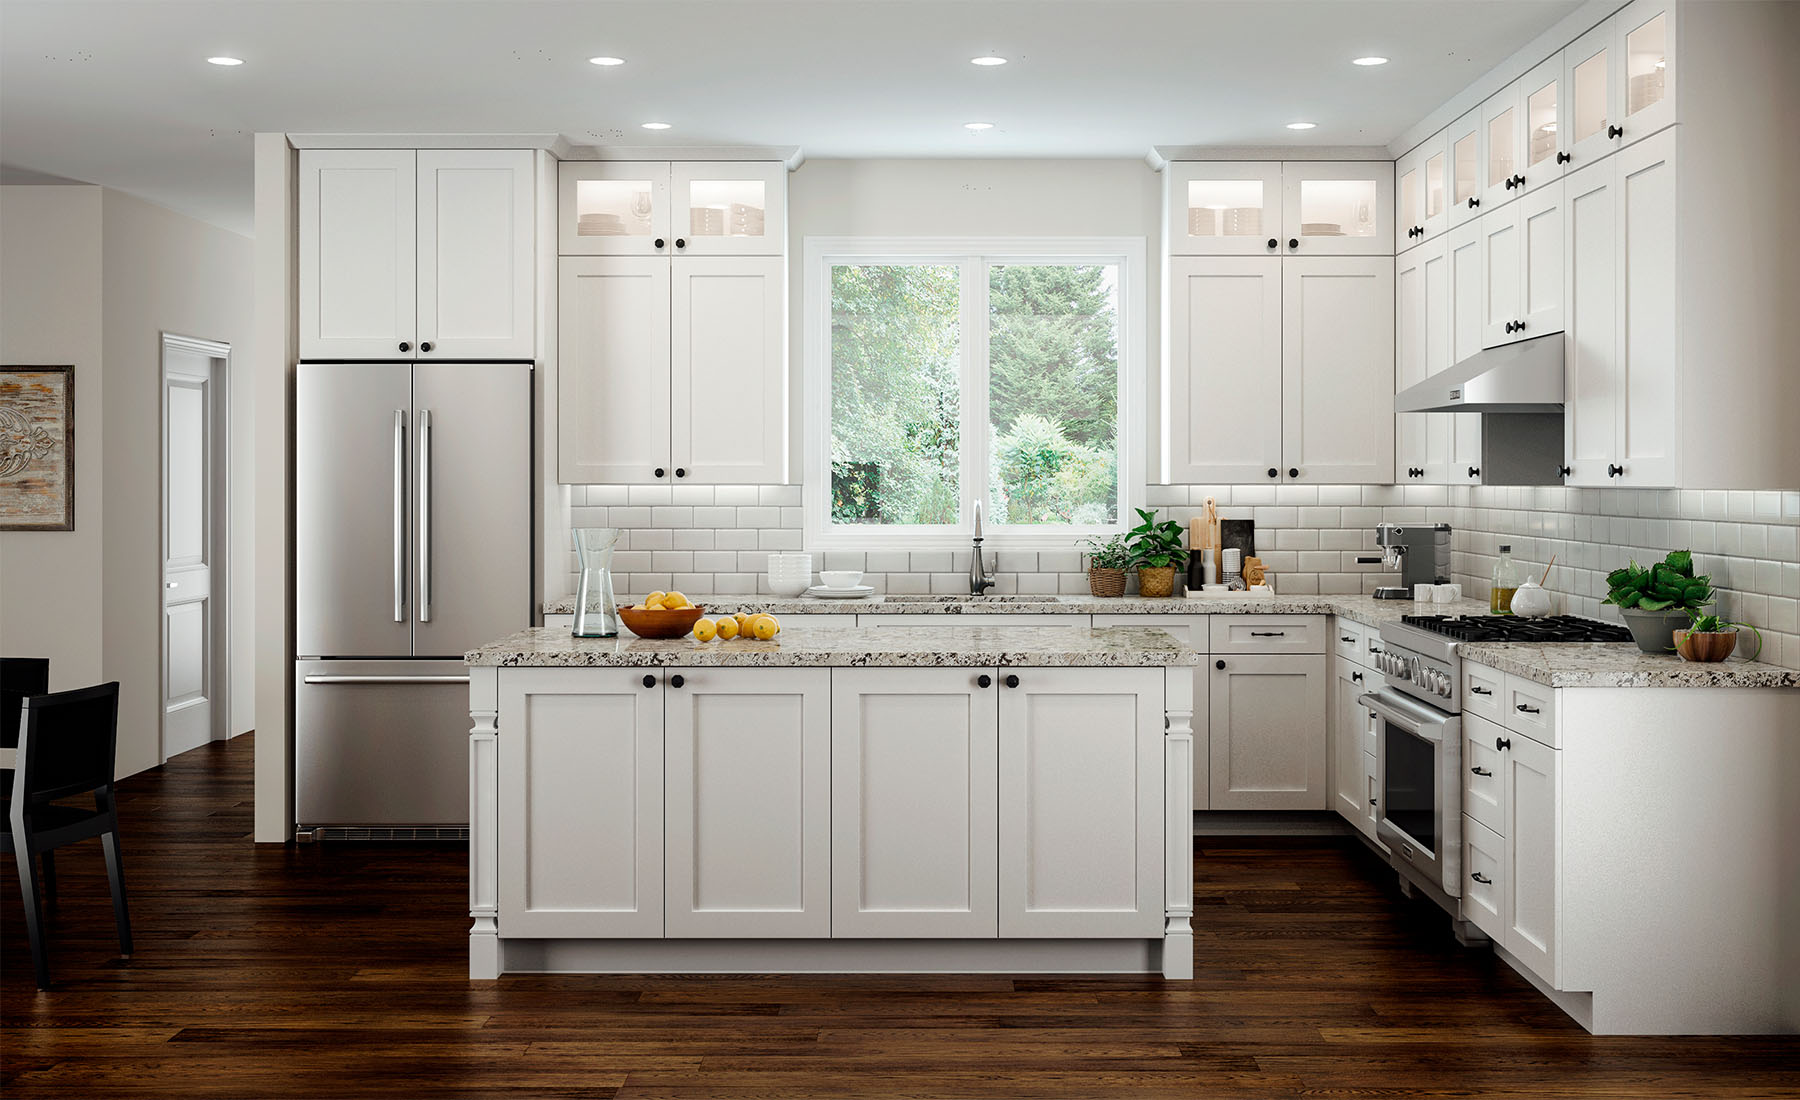 Marpro Cabinets Refacing & Kitchen Cabinets Painting ...